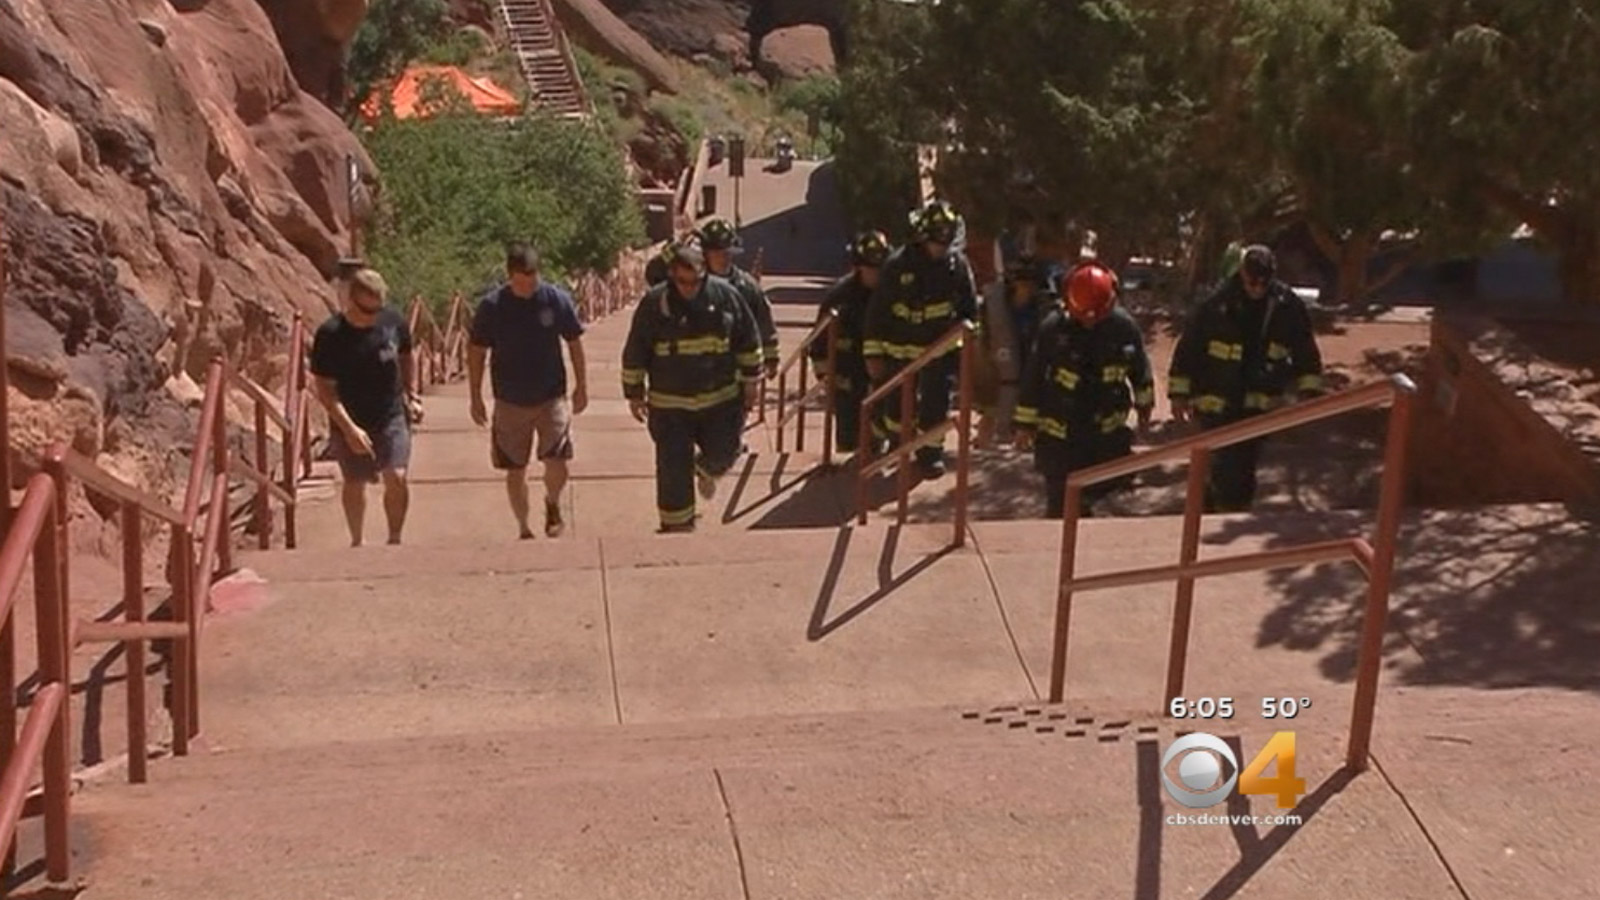 Firefighters climb the stairs at Red Rocks as a tribute to 9/11. (credit: CBS)